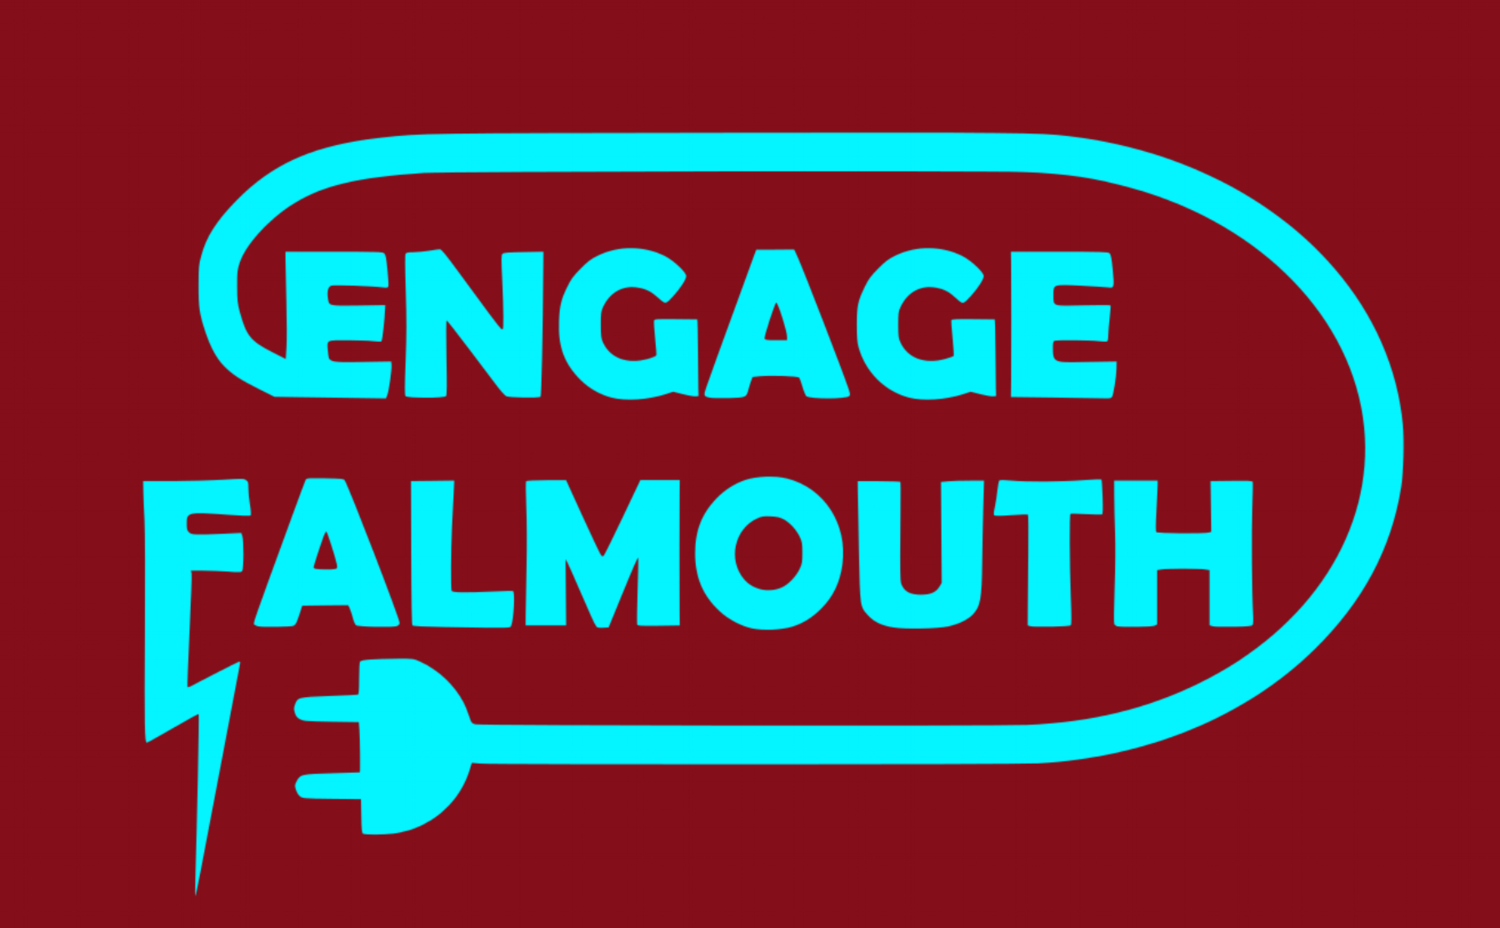 Engage Falmouth